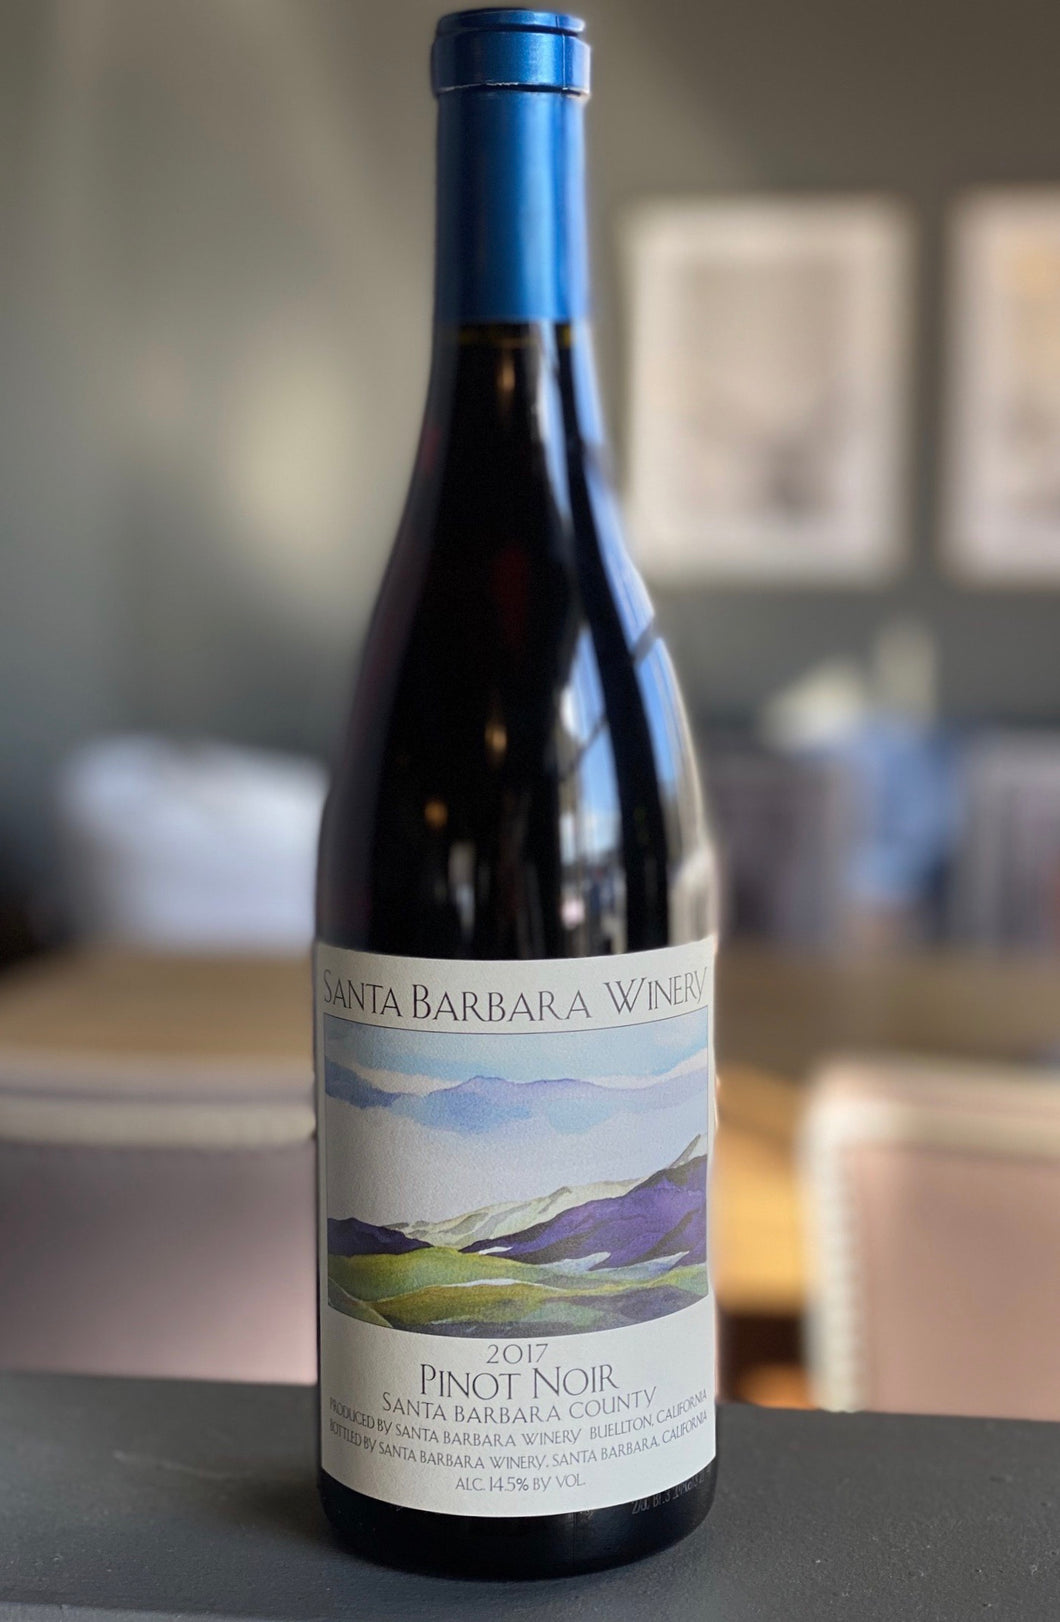 Santa Barbara Winery Pinot Noir, 2018